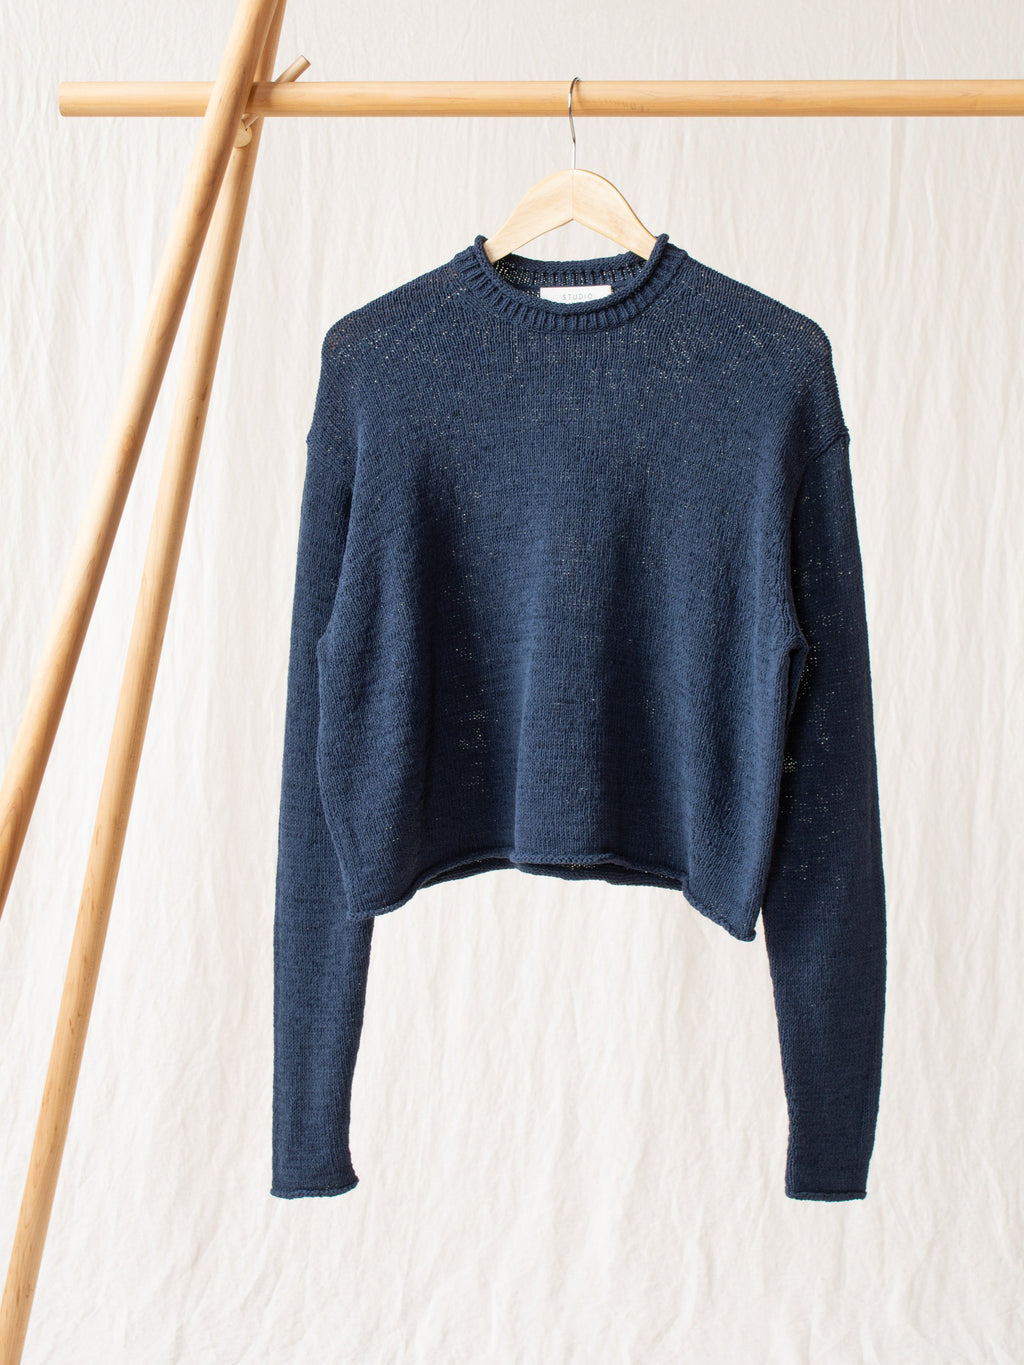 Namu Shop - Studio Nicholson Ruiz Modern Ribbon Knit - Navy